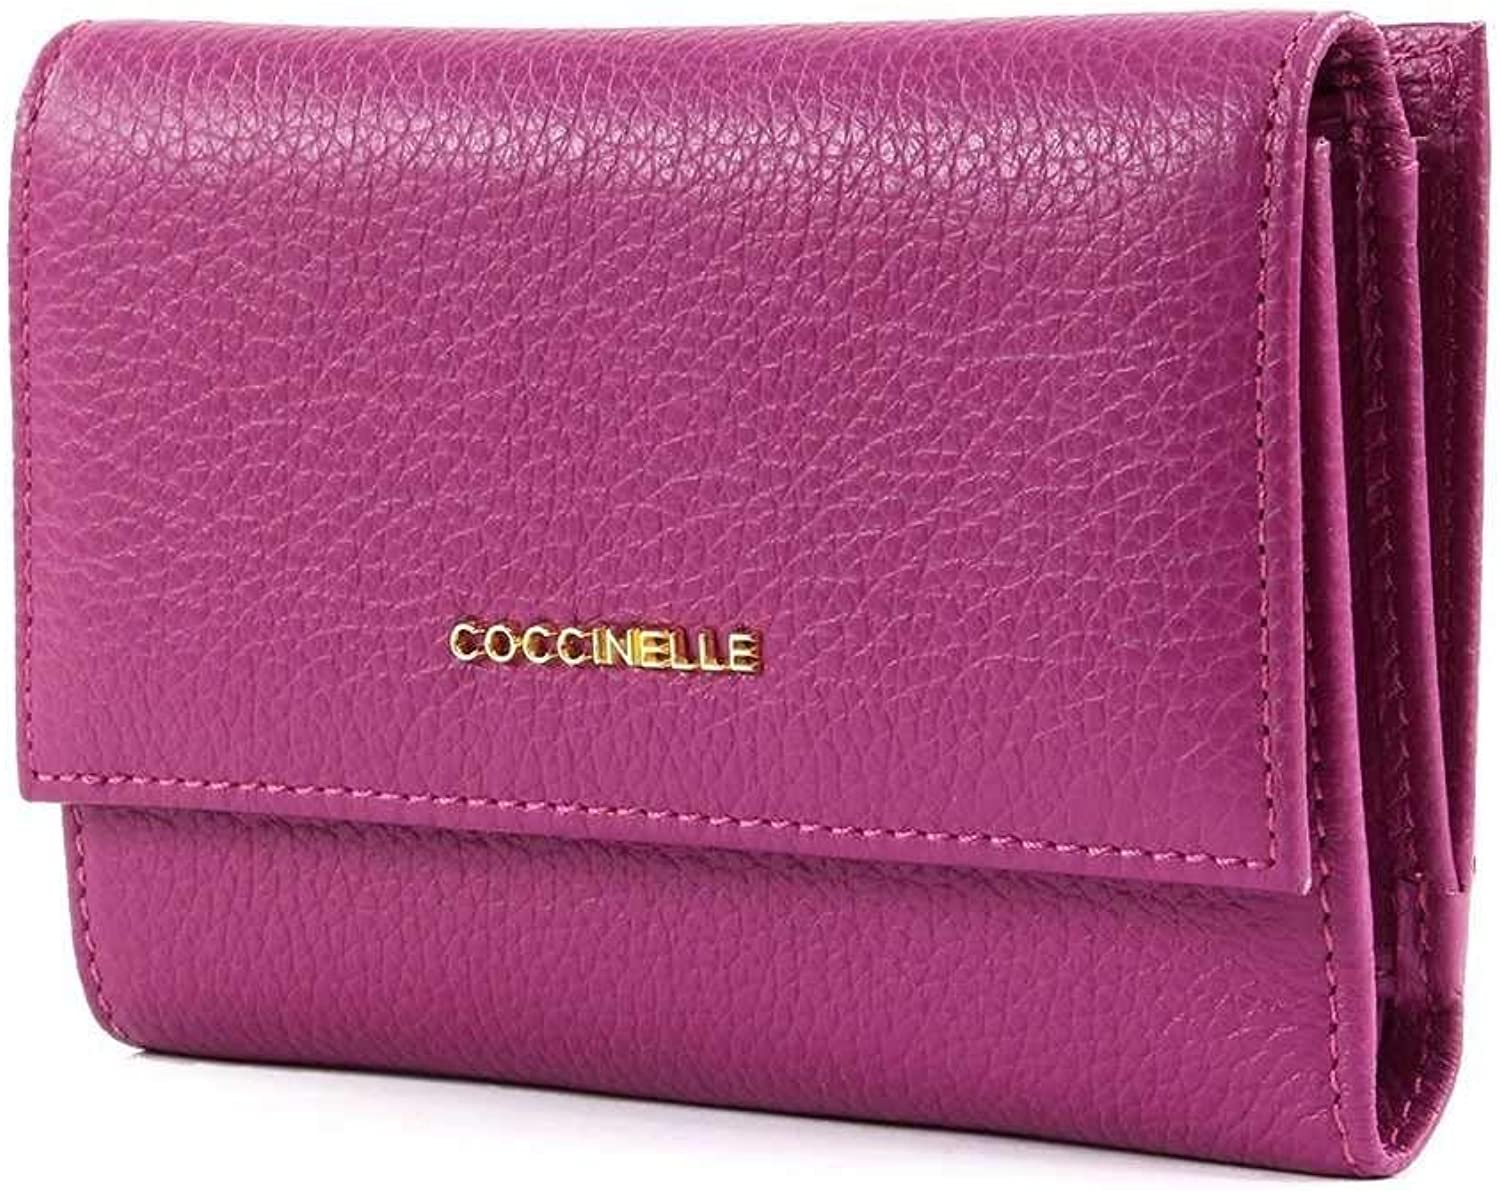 COCCINELLE Wallet METALLIC SOFT Female Leather purple  E2DW5116601V02